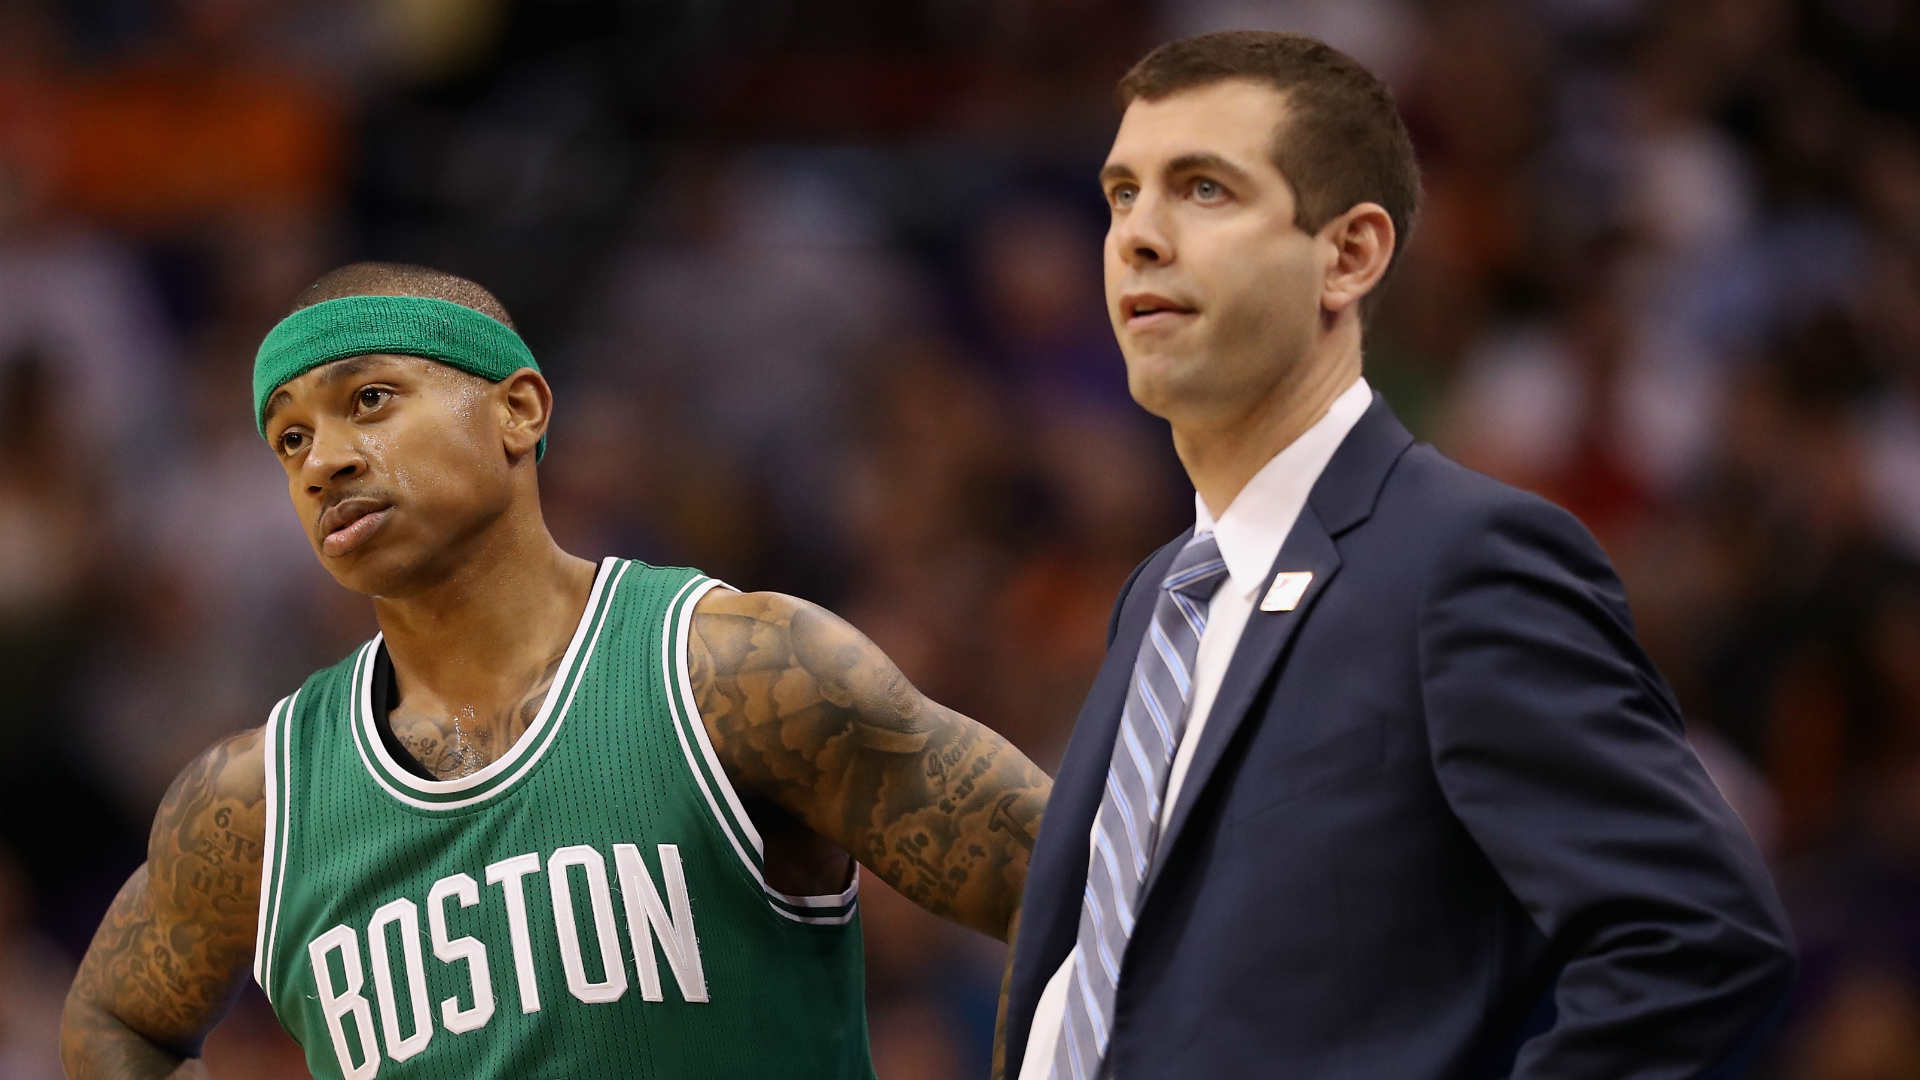 Isaiah Thomas 'Would Love' To Be With Celtics Long Term, Win Championships